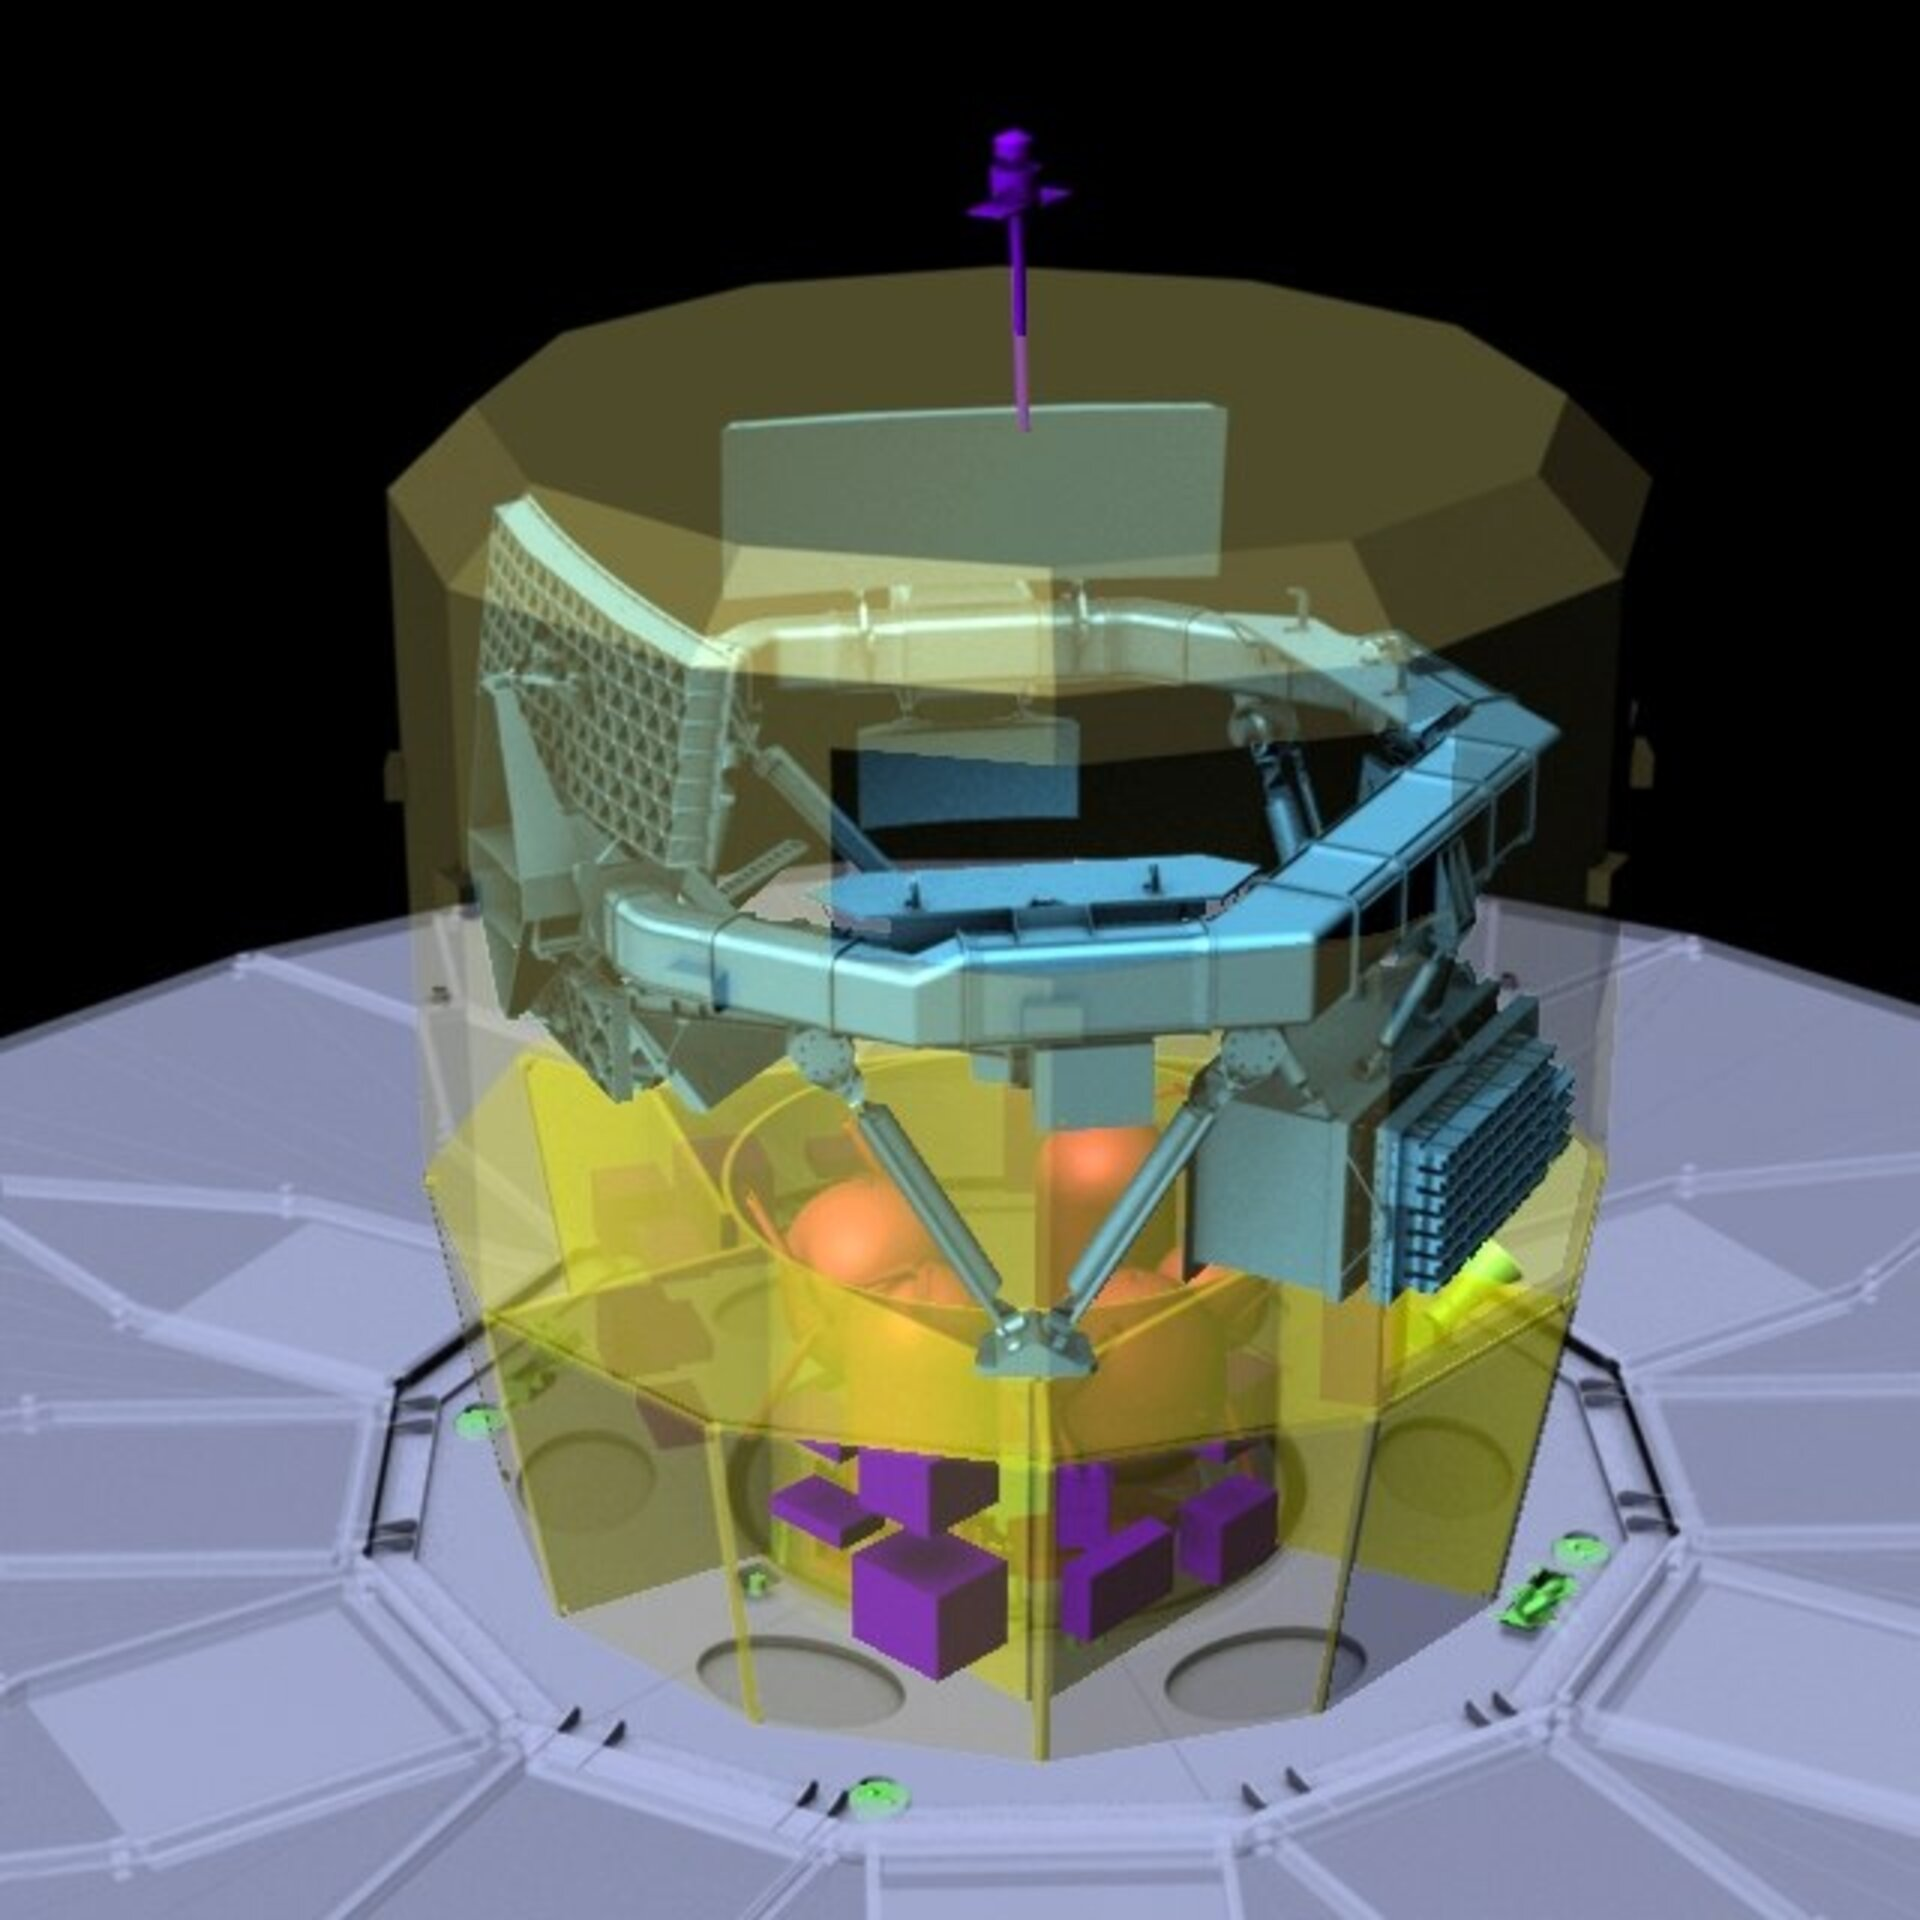 Transparent Gaia spacecraft diagram